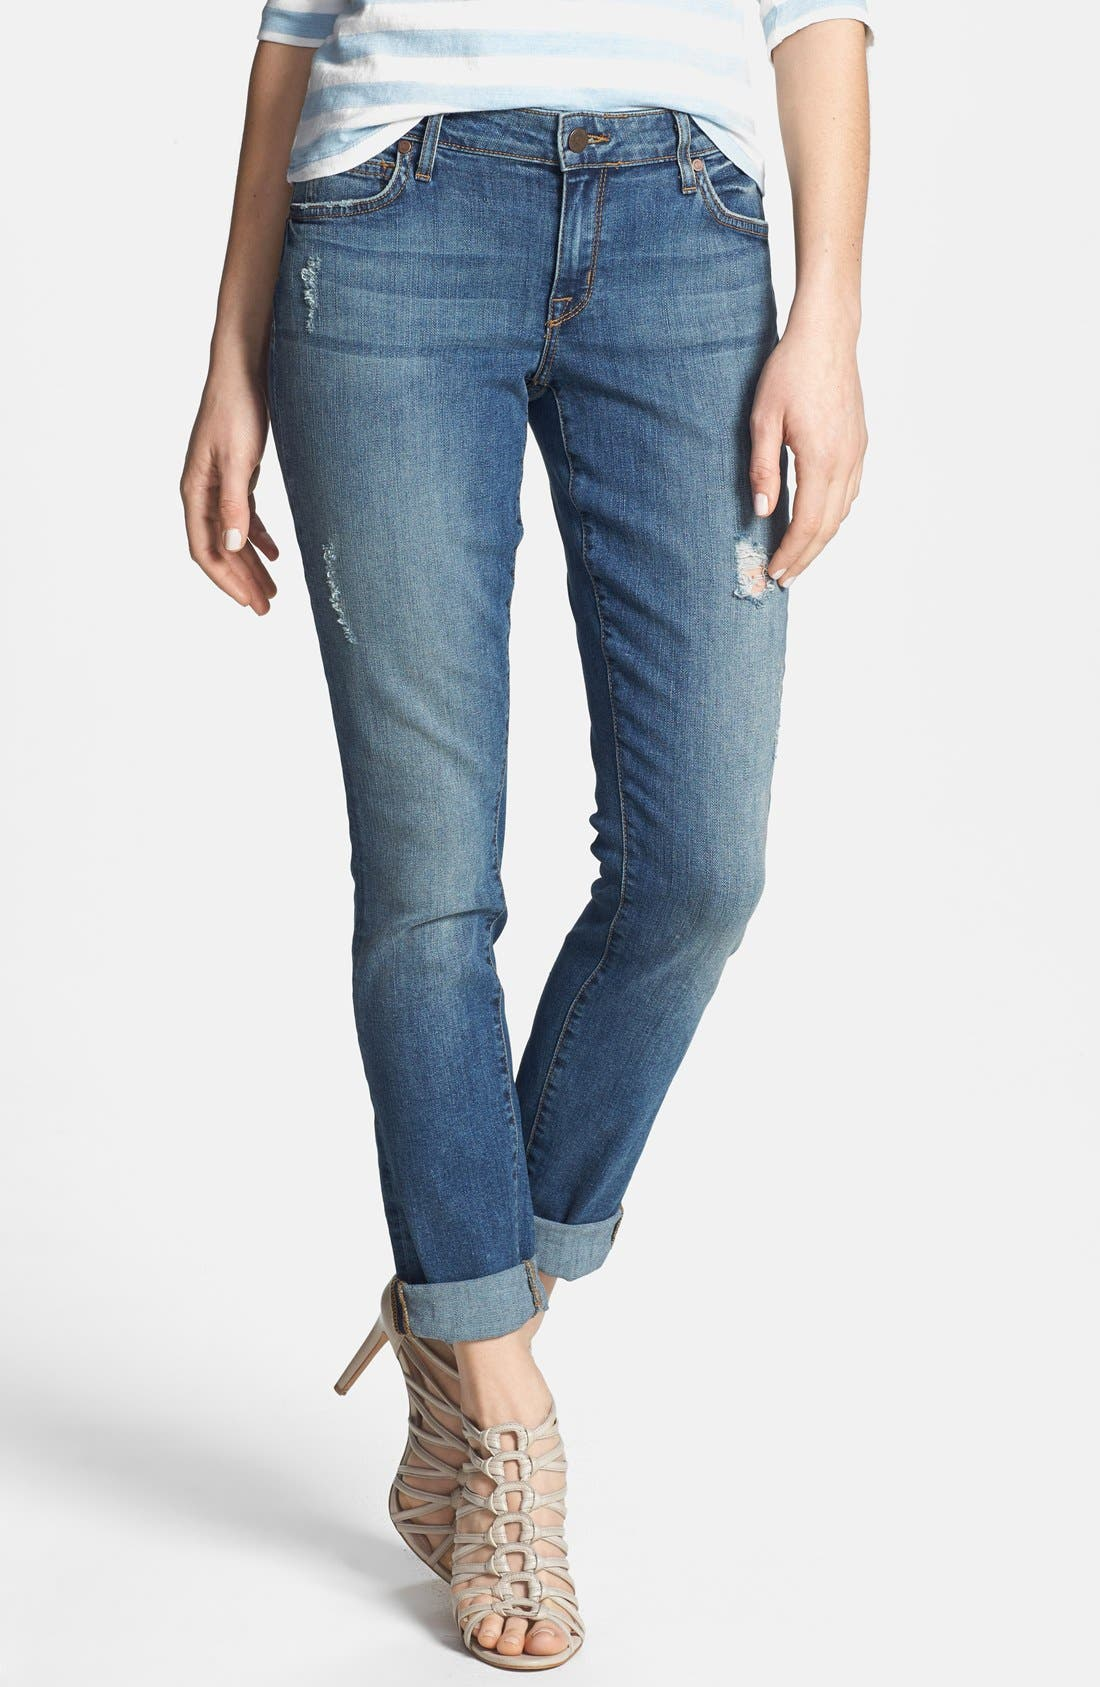 Alternate Image 1 Selected - CJ by Cookie Johnson 'Glory' Slim Boyfriend Jeans (Hitsville)